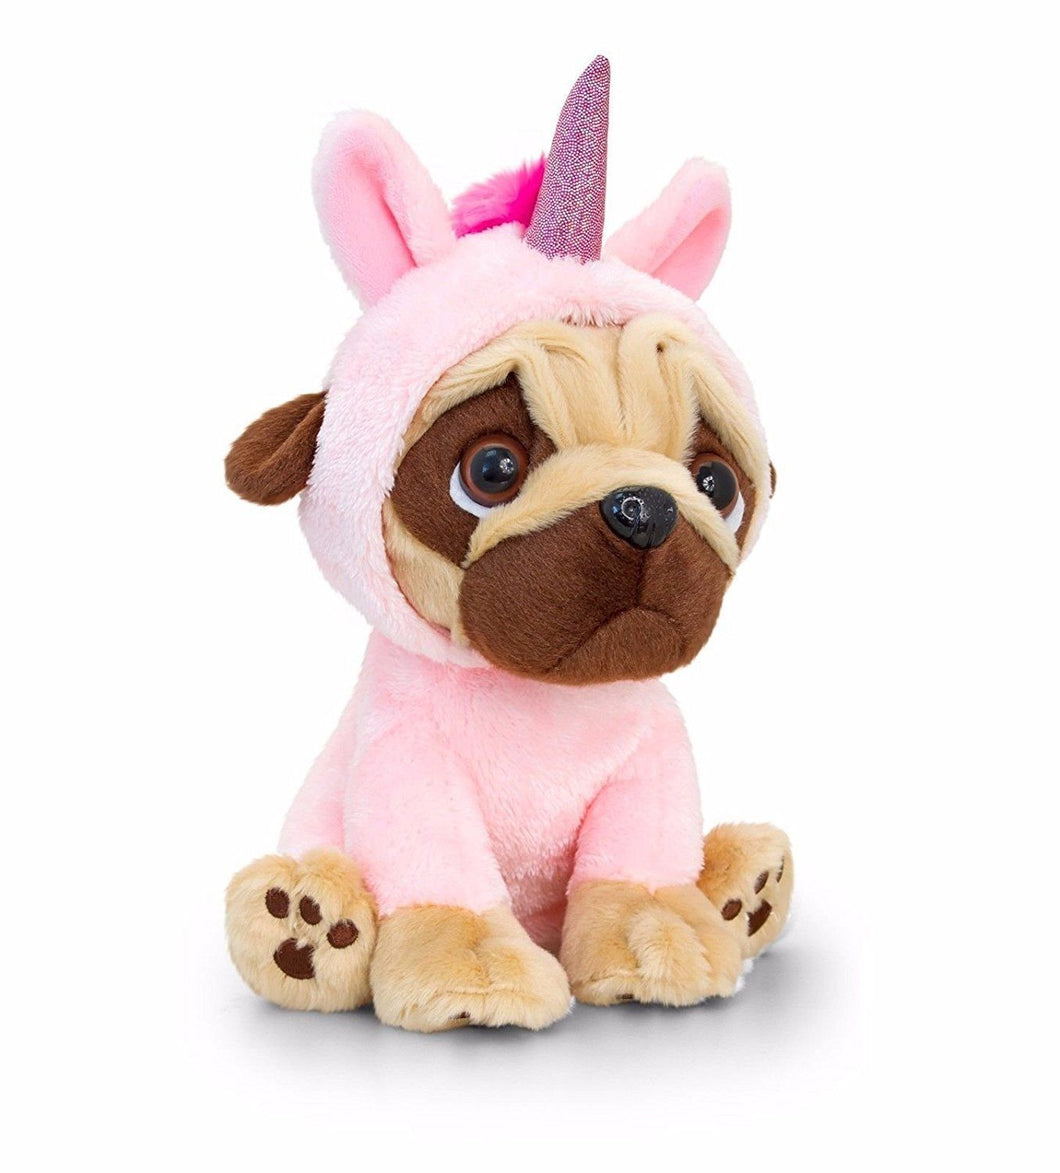 Keel Toys Pugsley 14cm Pug Dog in unicorn costume Cuddly Soft Toy Teddy Plush